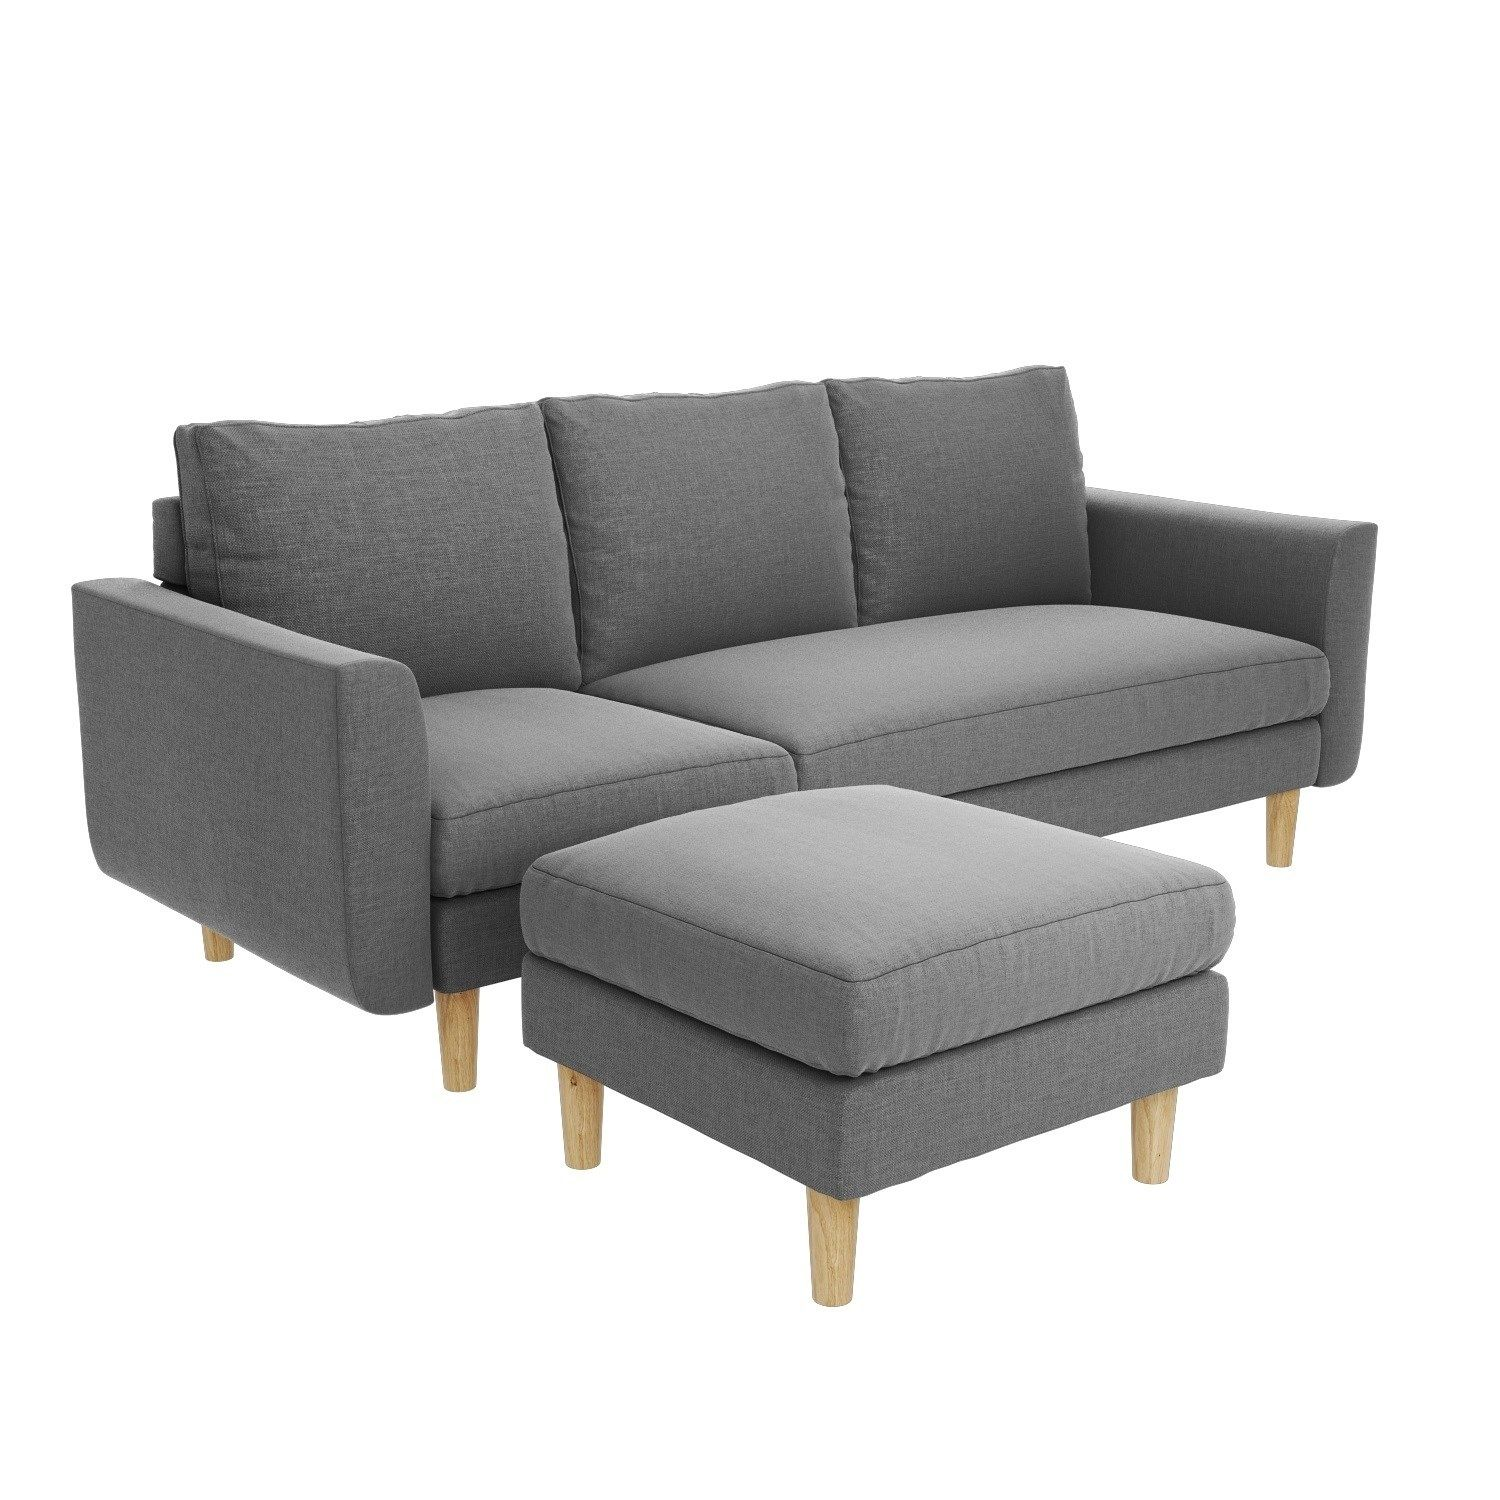 Small Corner Sofa Small Corner Sofa Corner Sofa Bed Uk Leather